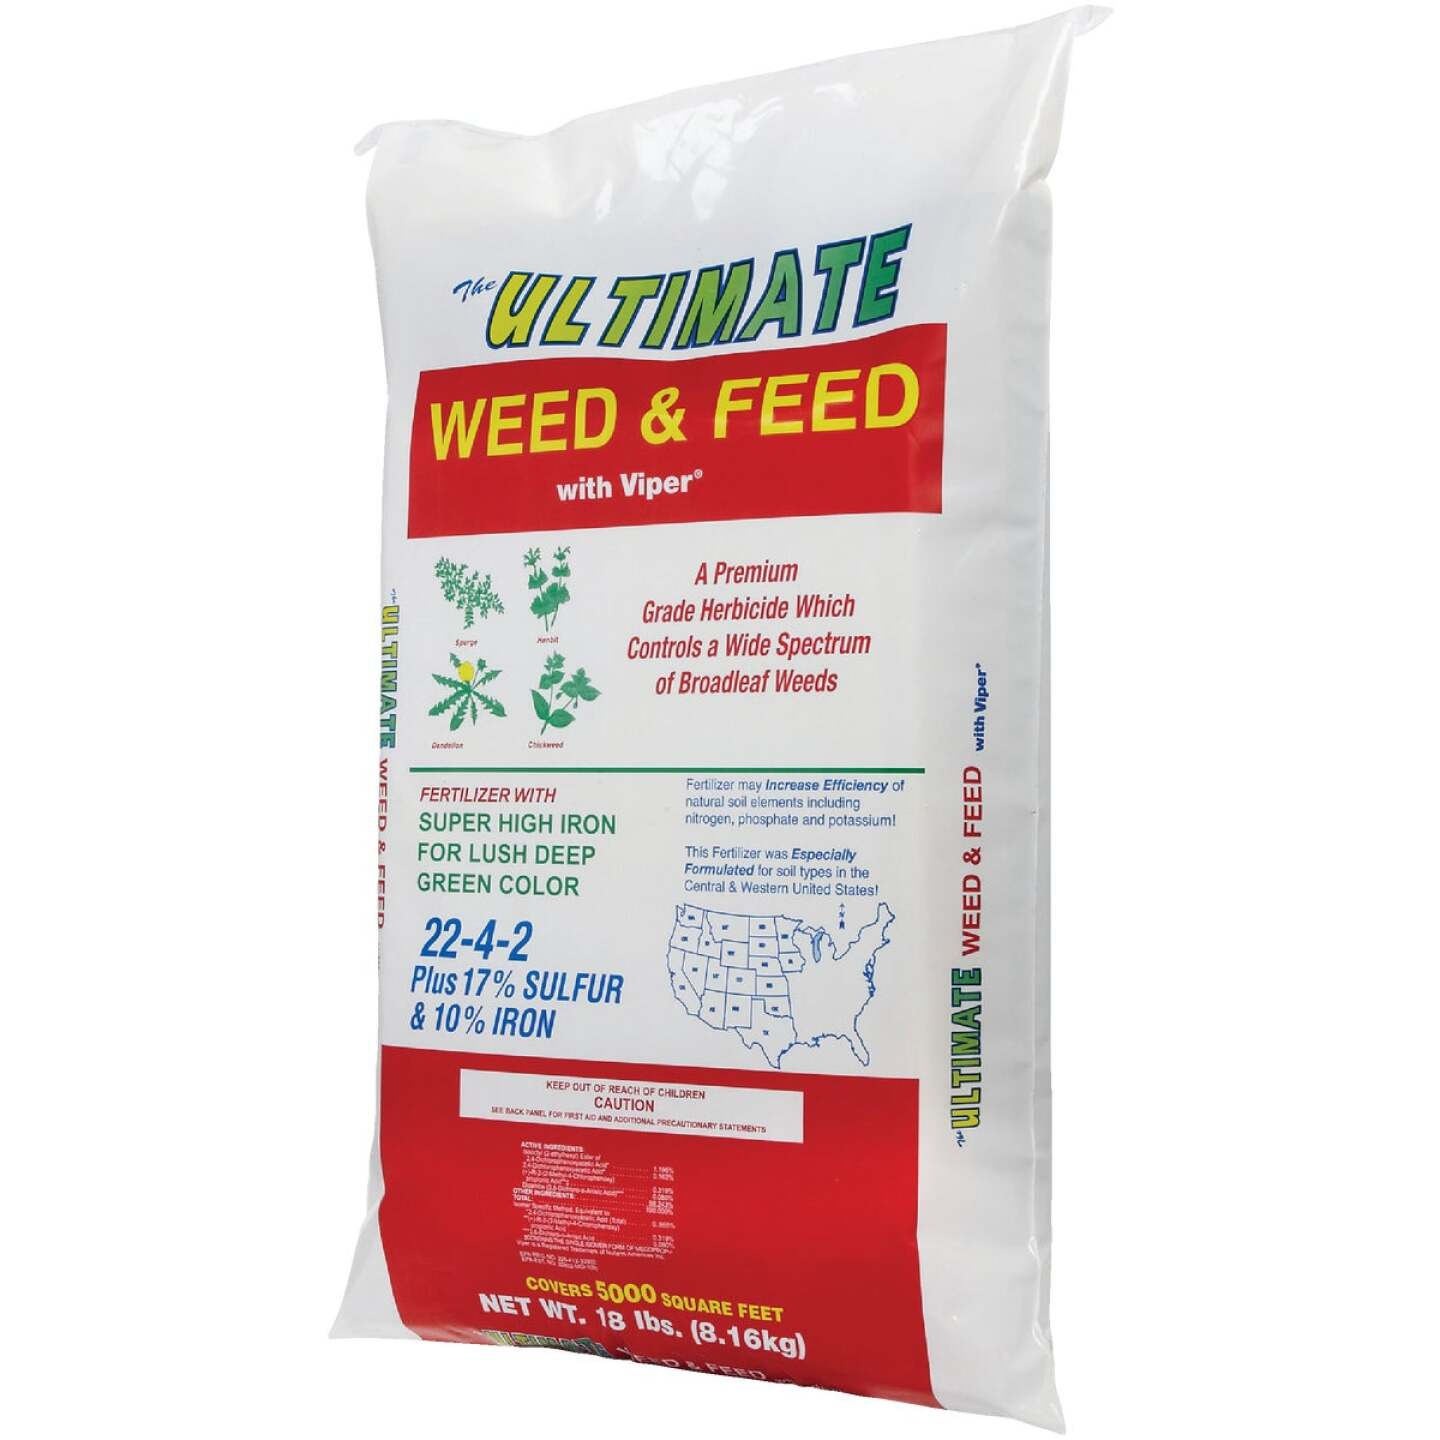 Ultimate Weed & Feed 18 Lb. 5000 Sq. Ft. 22-4-2 Lawn Fertilizer with Weed Killer Image 3